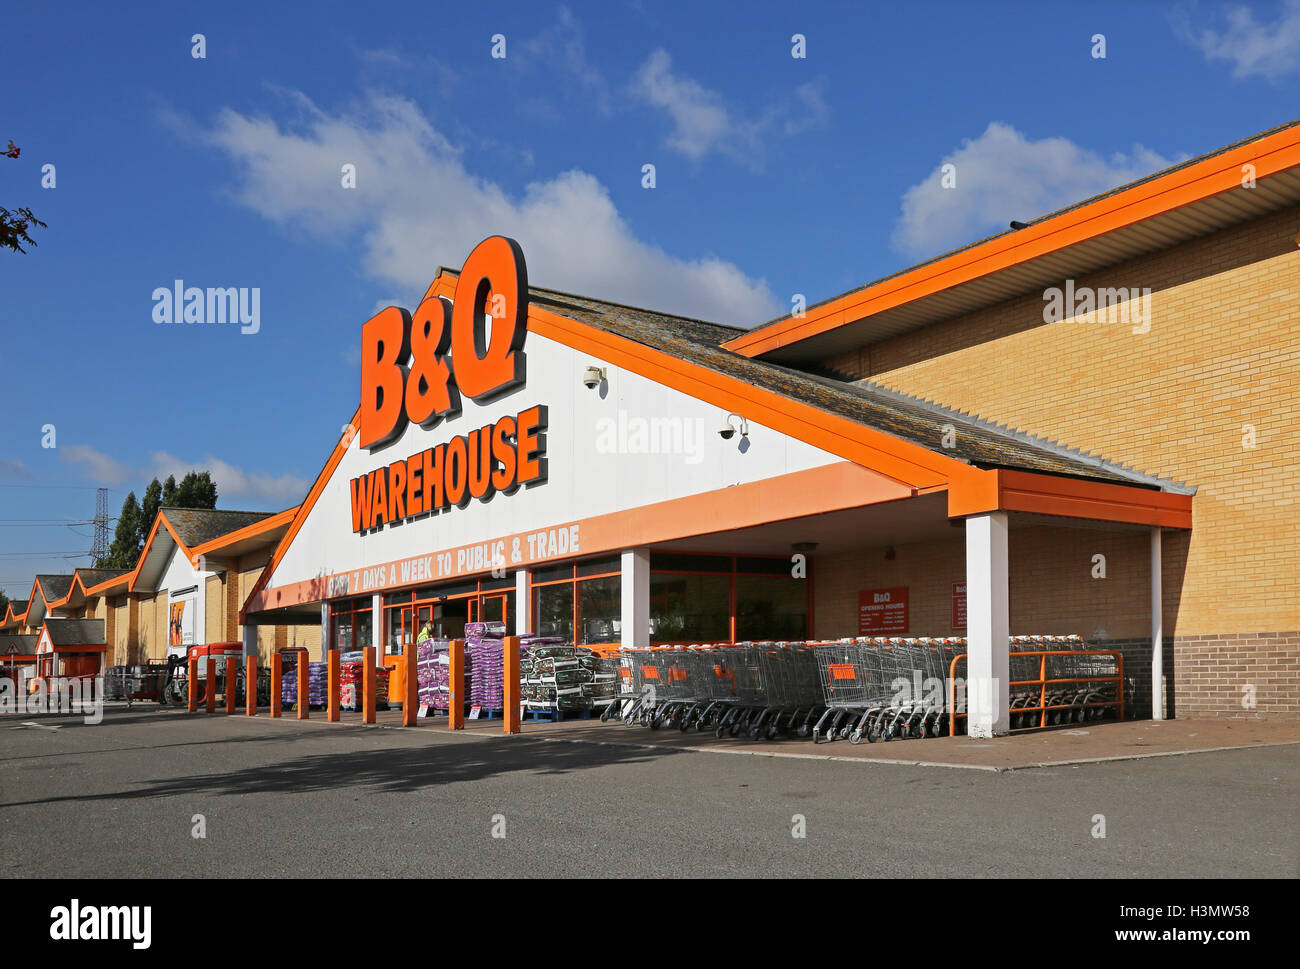 Entrance to the B&Q Warehouse store, Valley Park, Croydon, UK. A major out of town shopping area in South London, - Stock Image